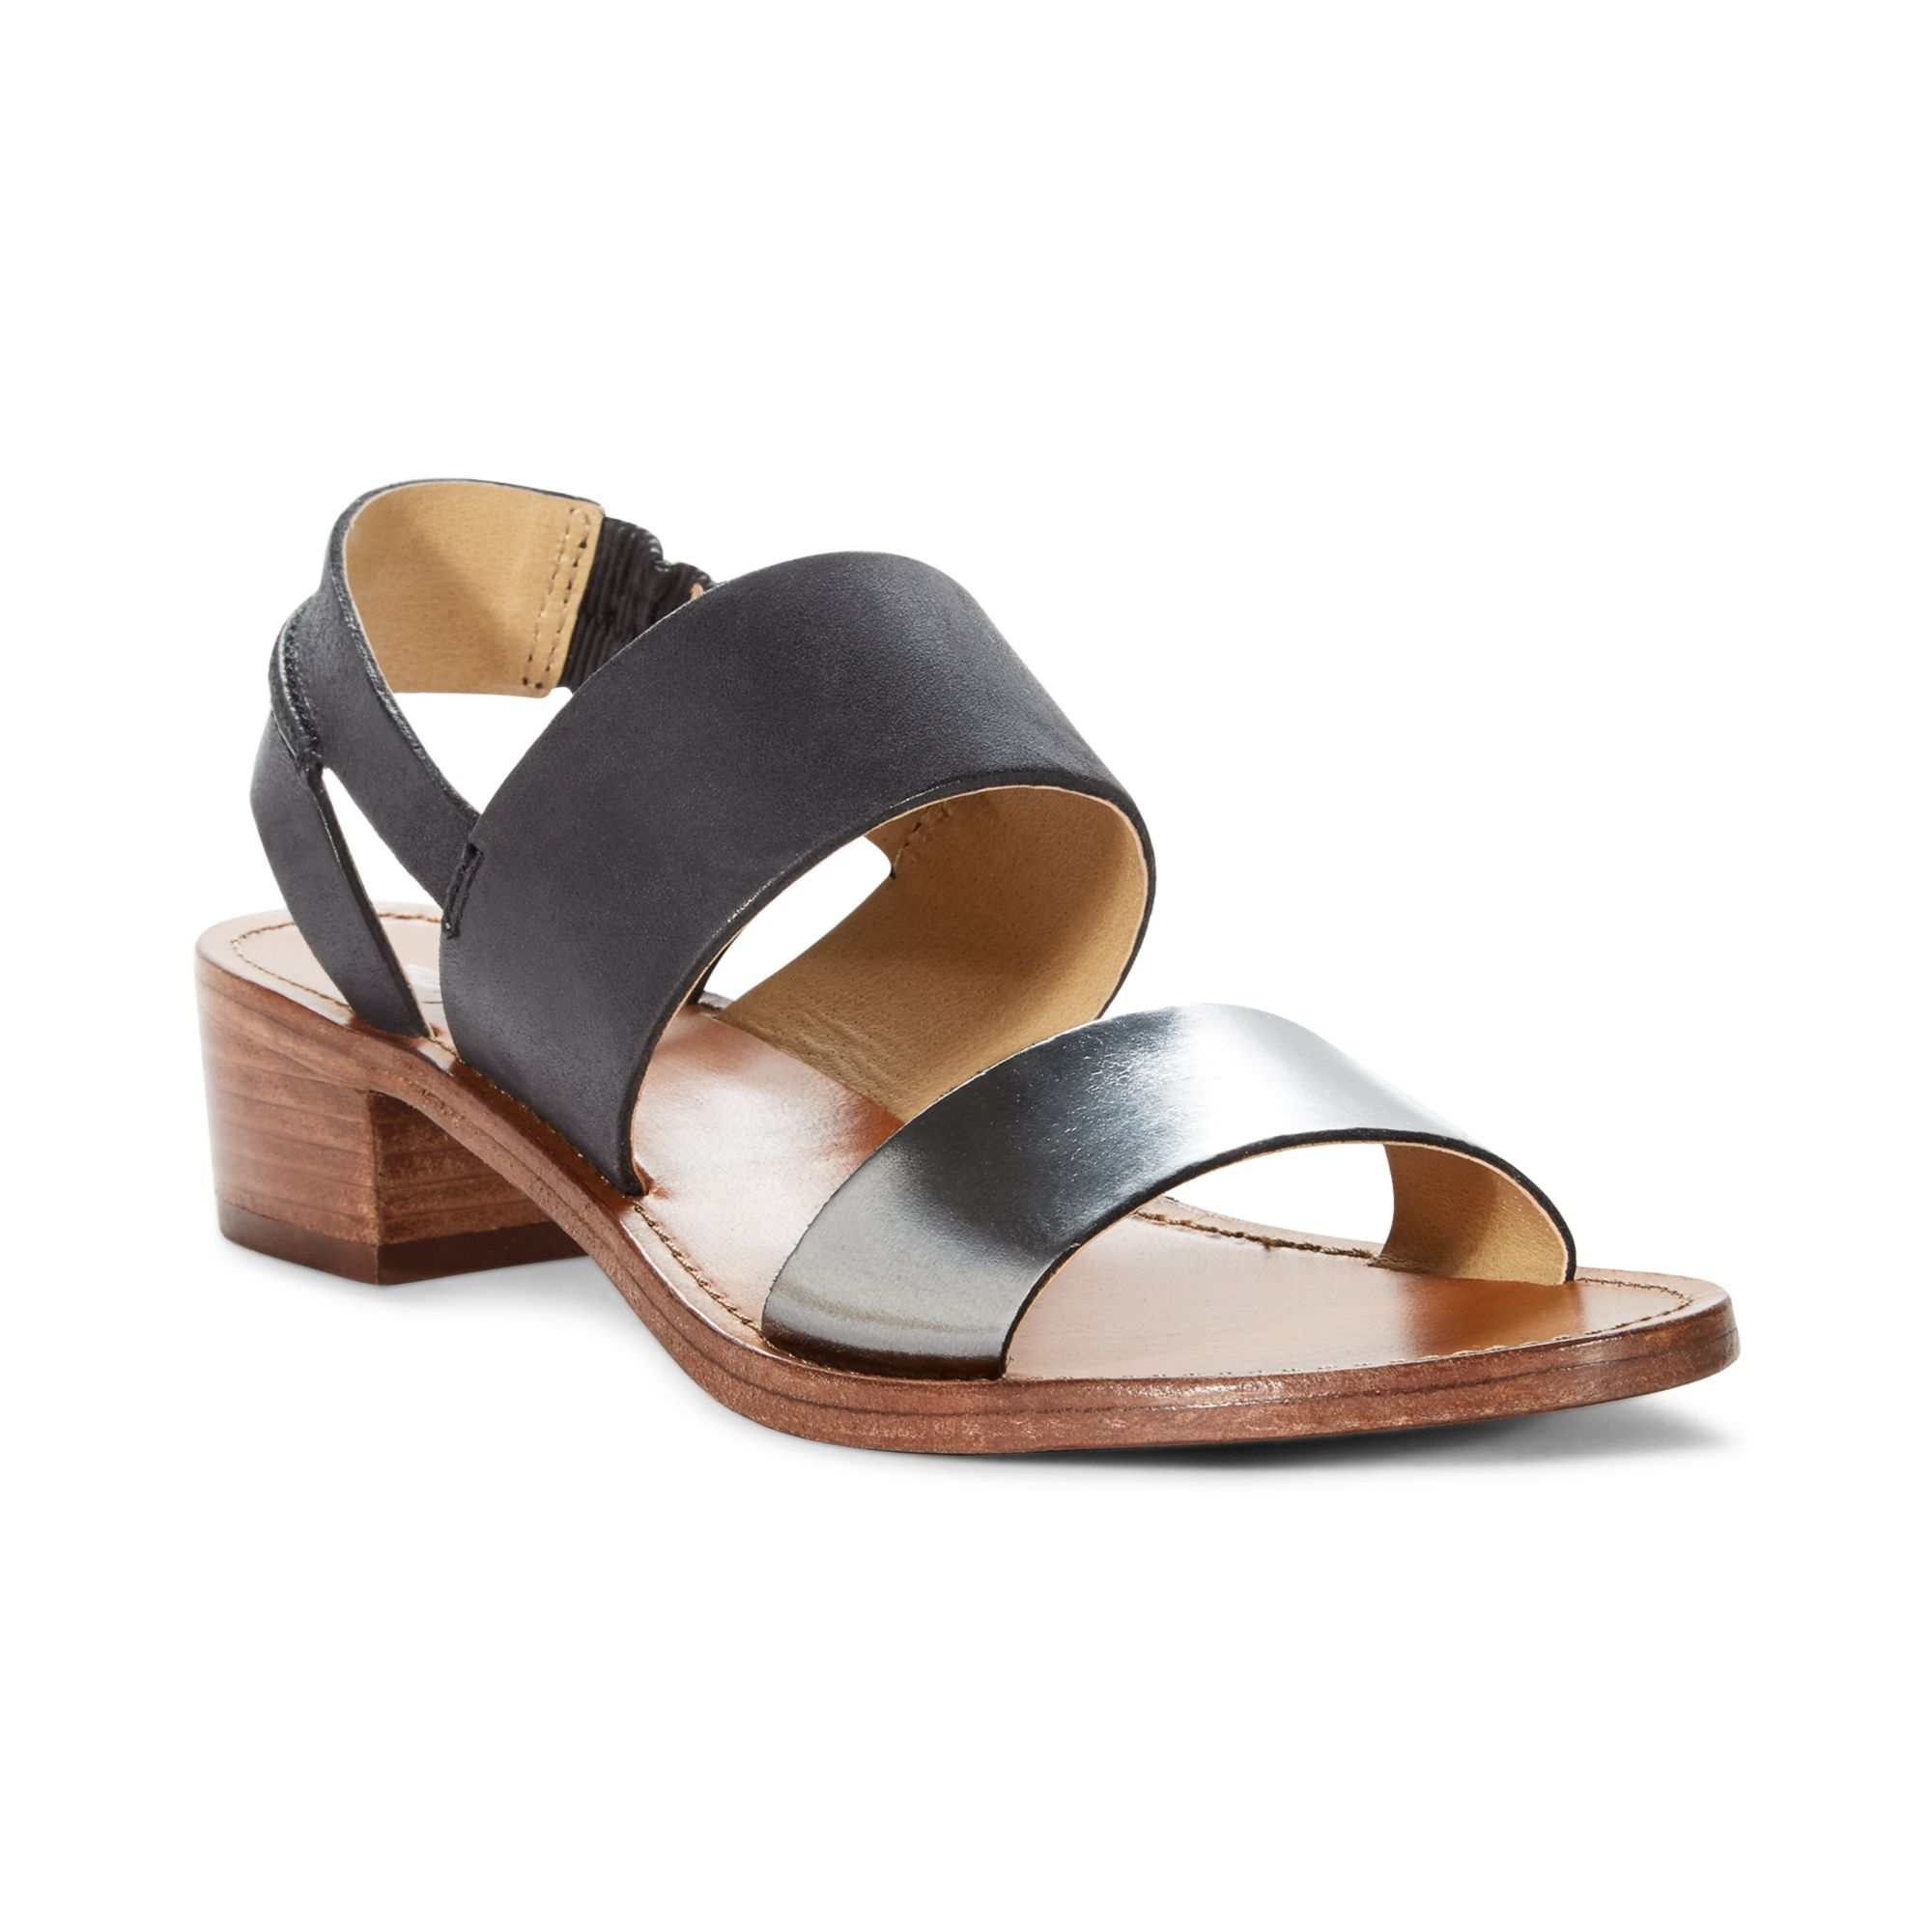 Kenneth Cole Reaction Shoes Women Flats With Small Heel